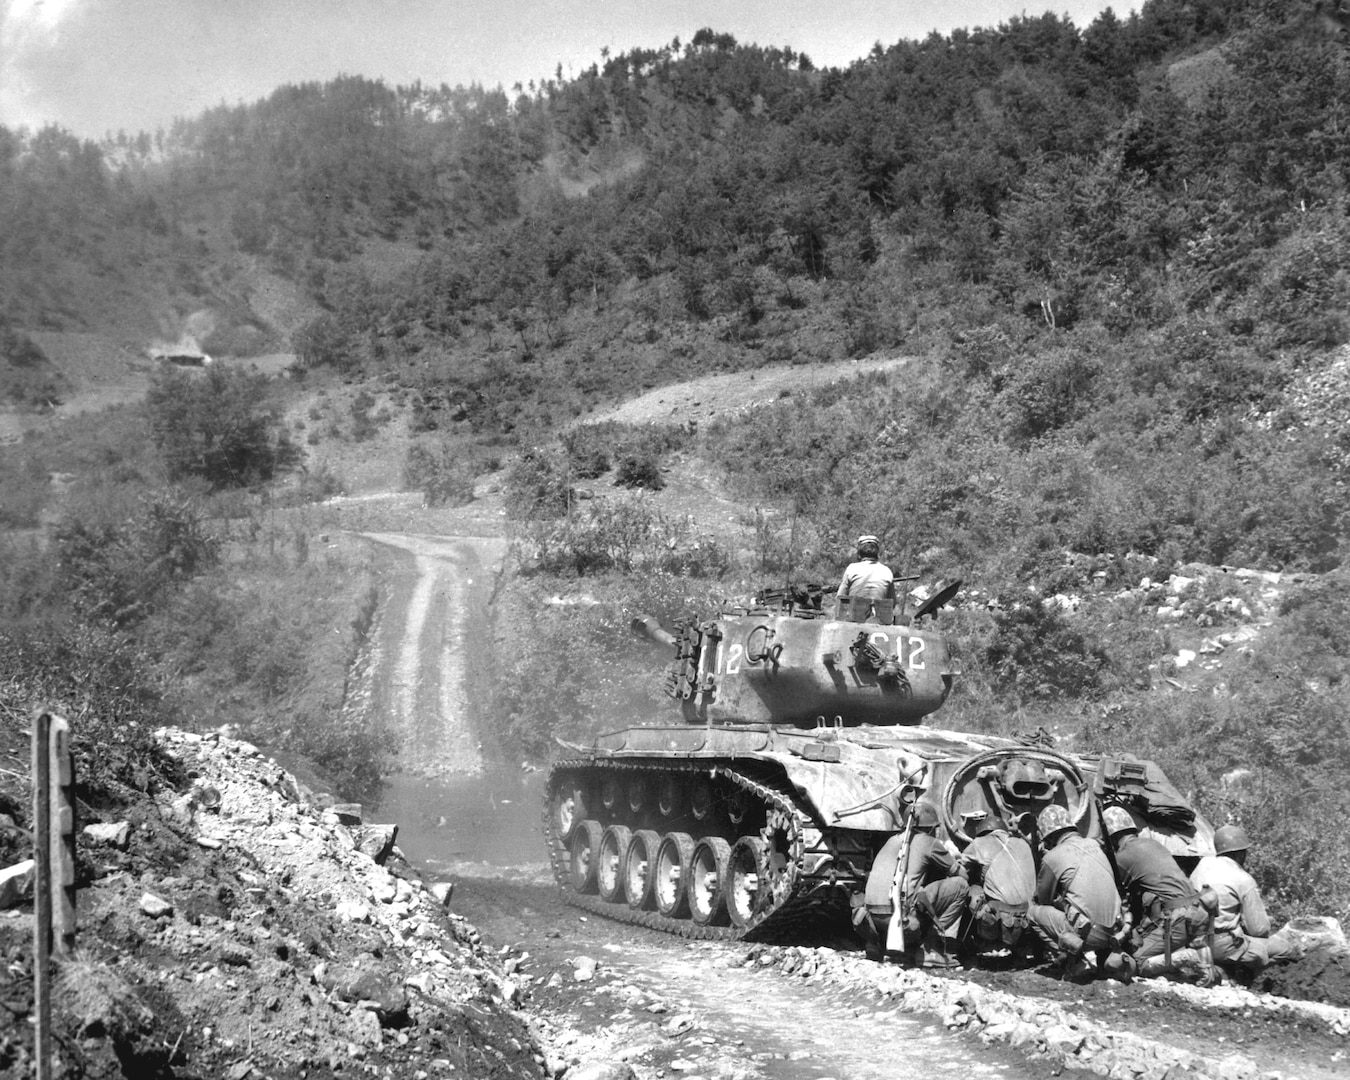 Marine infantrymen take cover behind tank while it fires on communist troops ahead, Hongchon Area, May 22, 1951 (U.S. Marine Corps/John Babyak, Jr.)